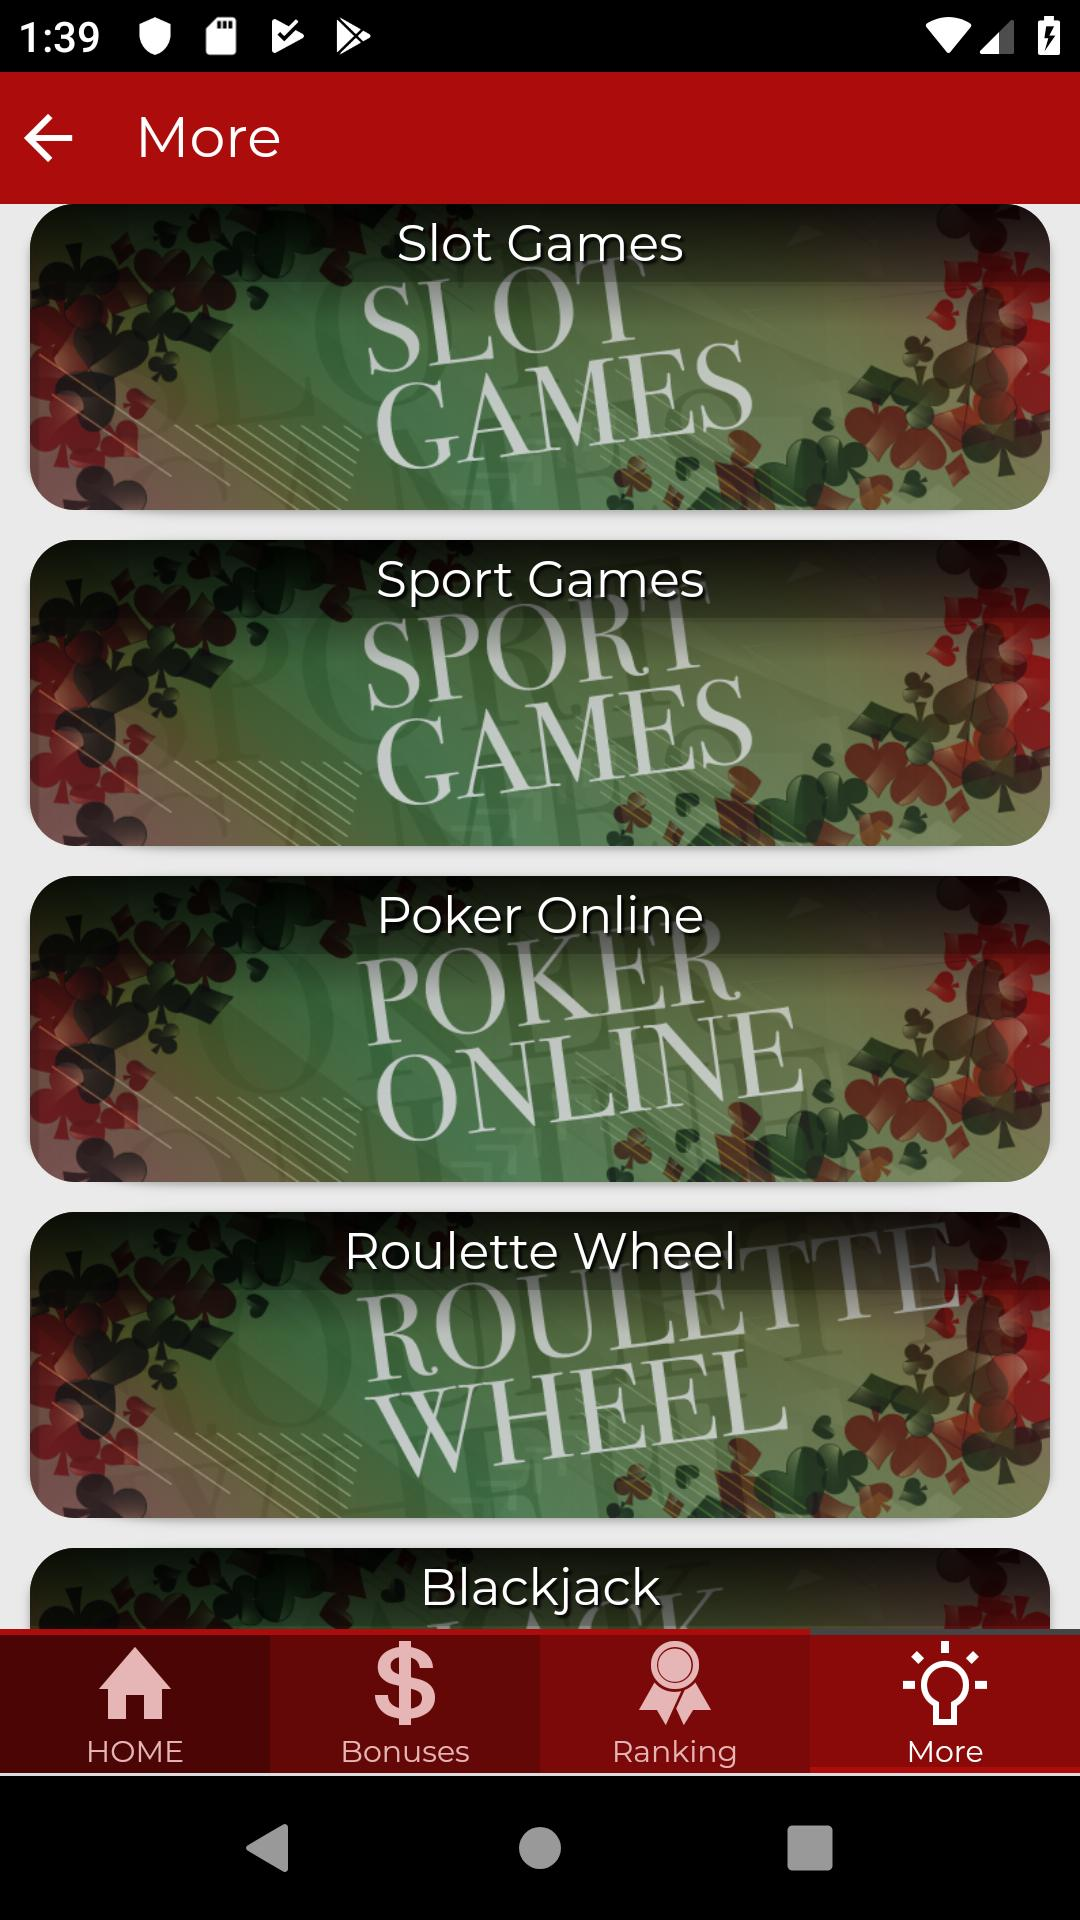 Sun palace casino online valley view casino newspaper coupons